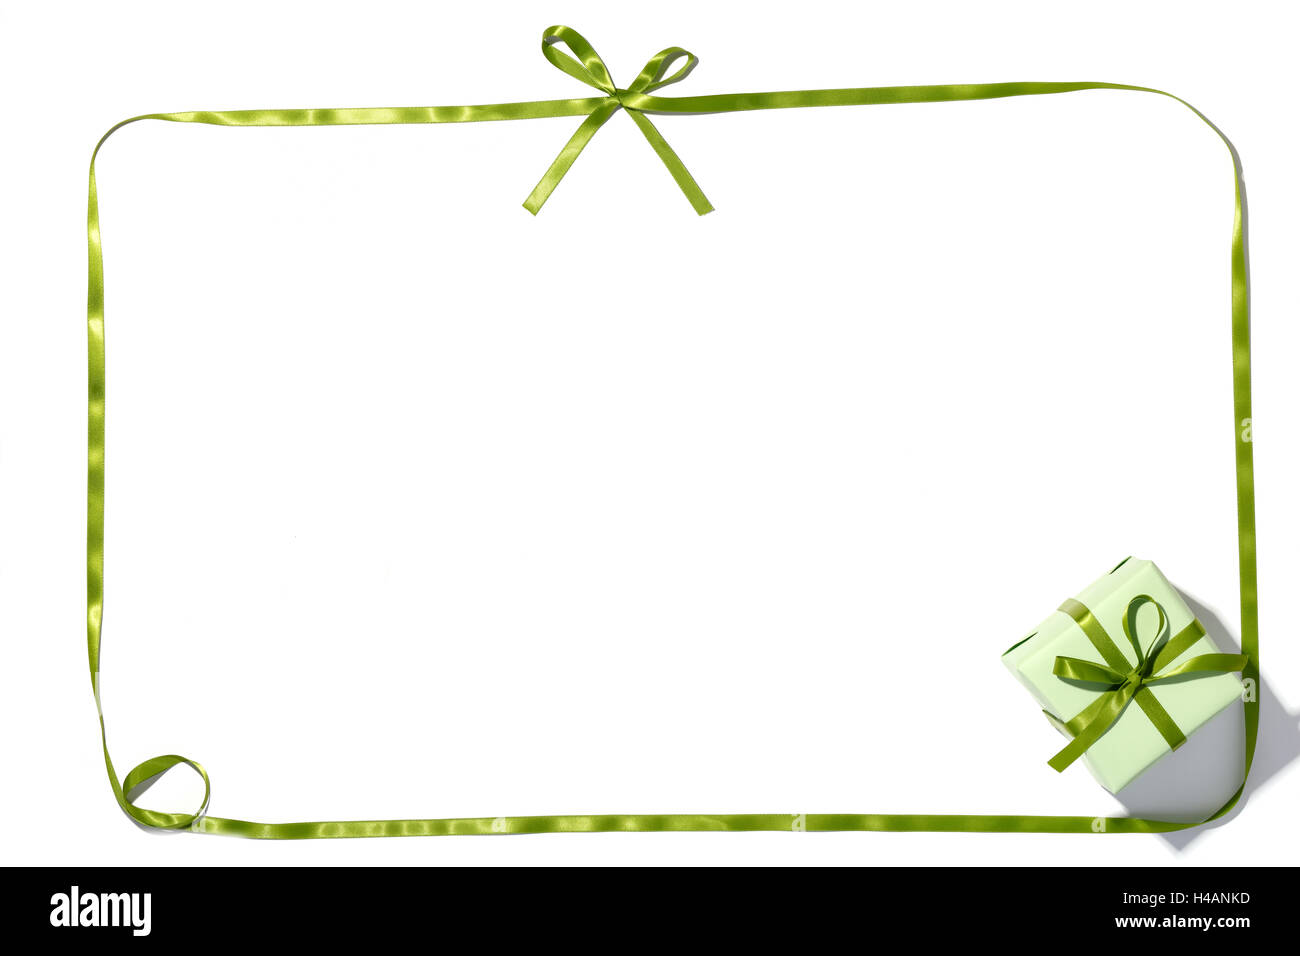 Green ribbon and gift box on white background - Stock Image